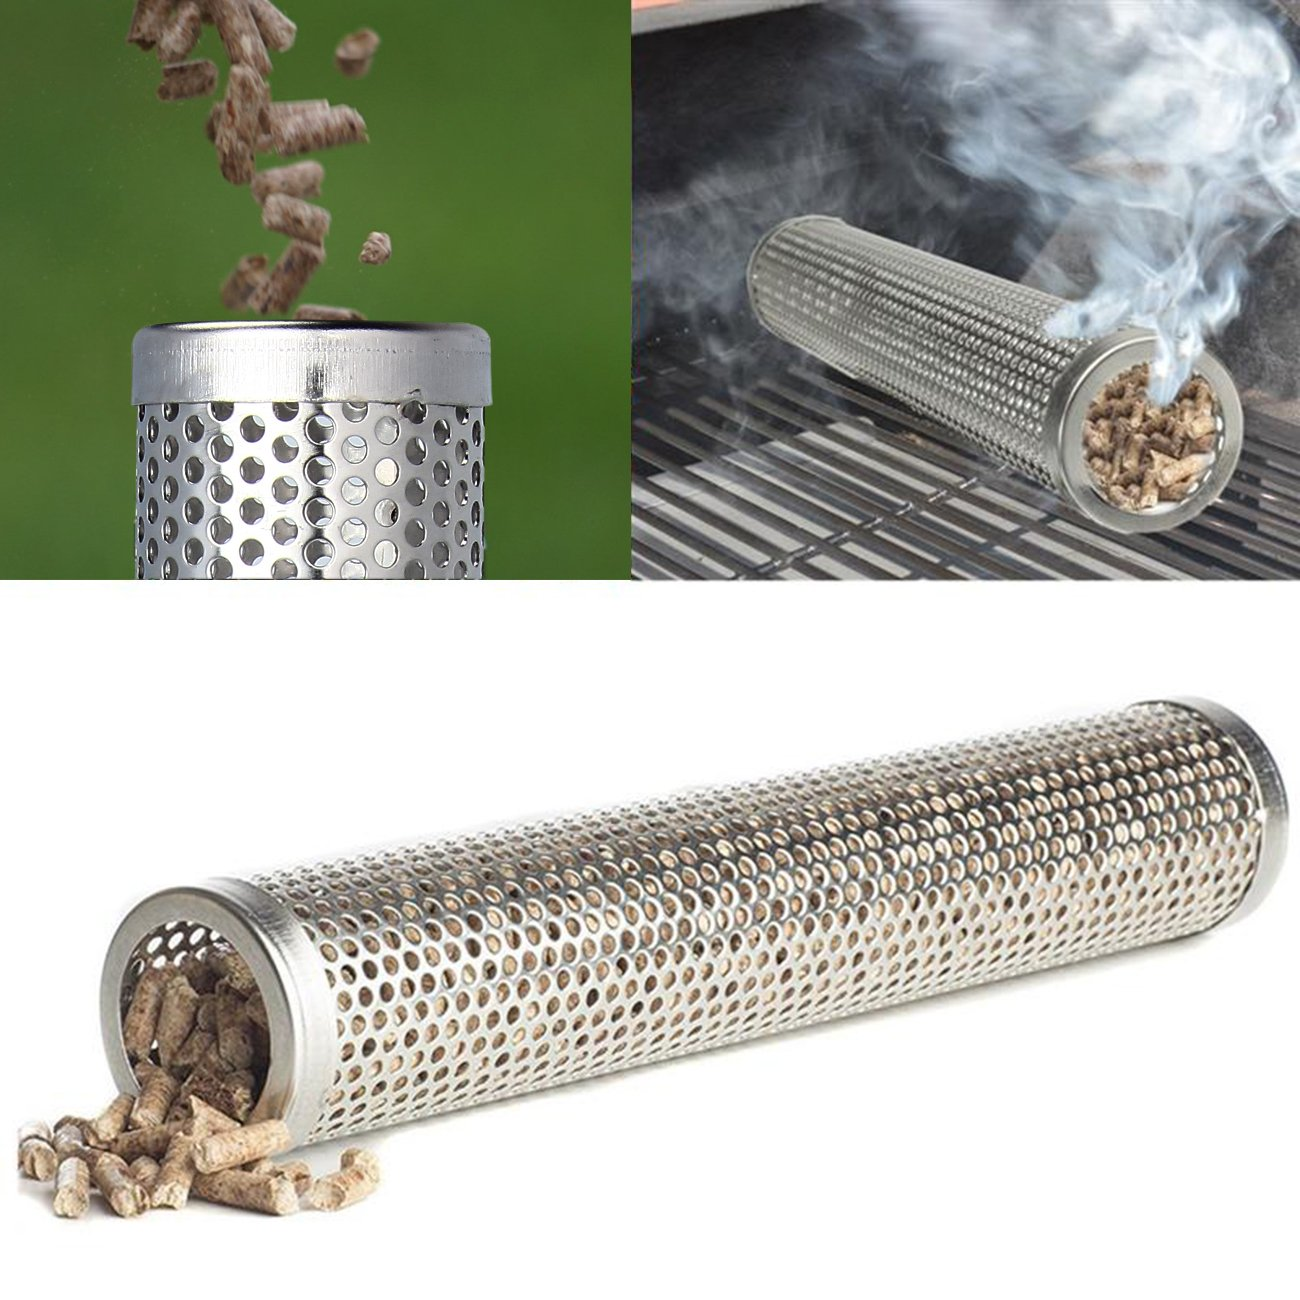 Evilandat Pellet Smoker Tube Stainless Steel BBQ Pipe for Grill Barbecue Wood Pellet